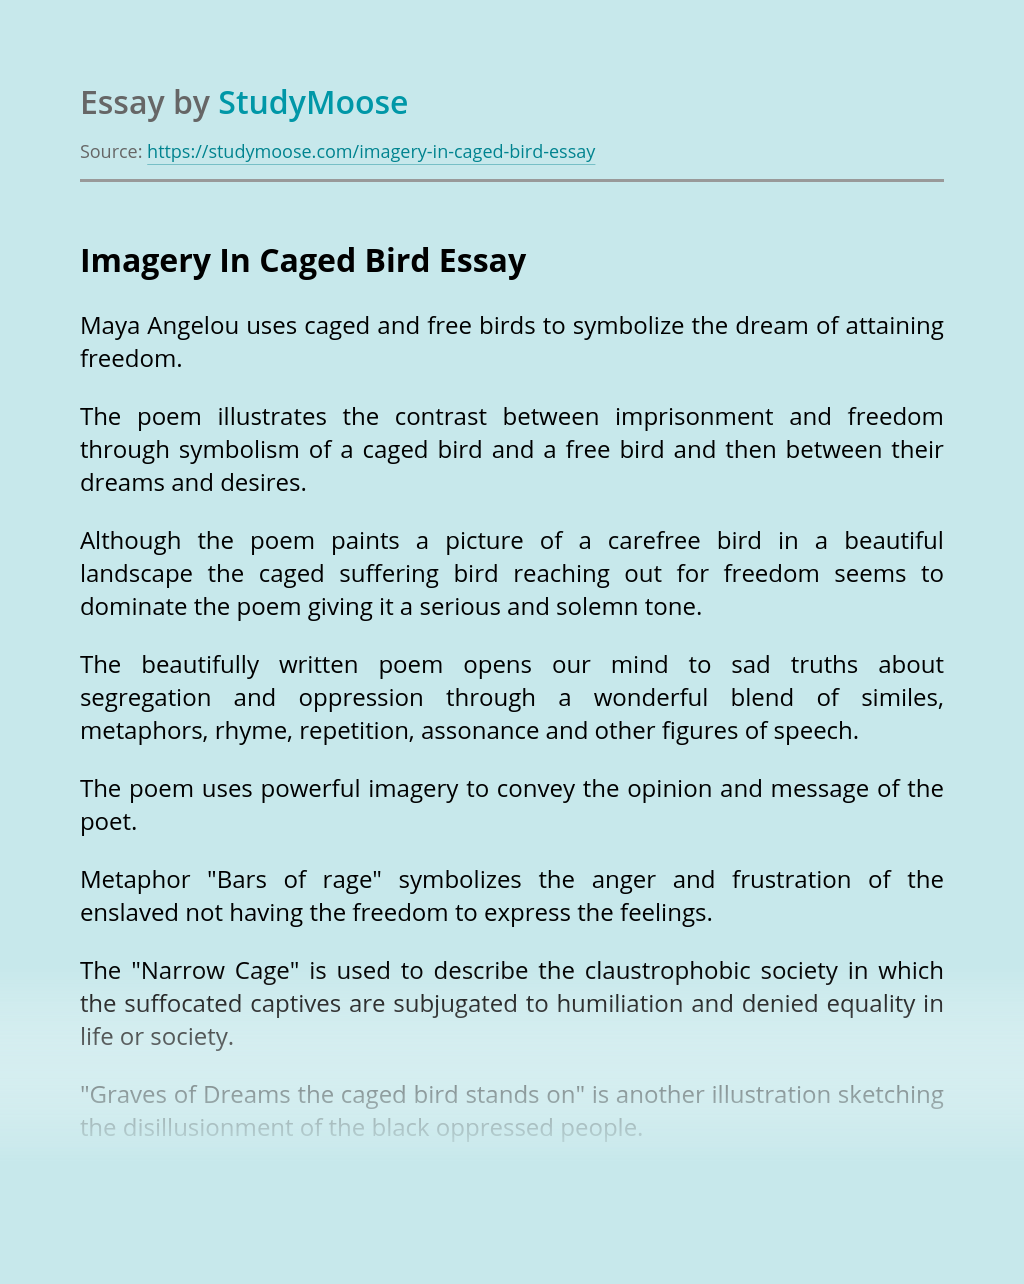 Imagery In Caged Bird